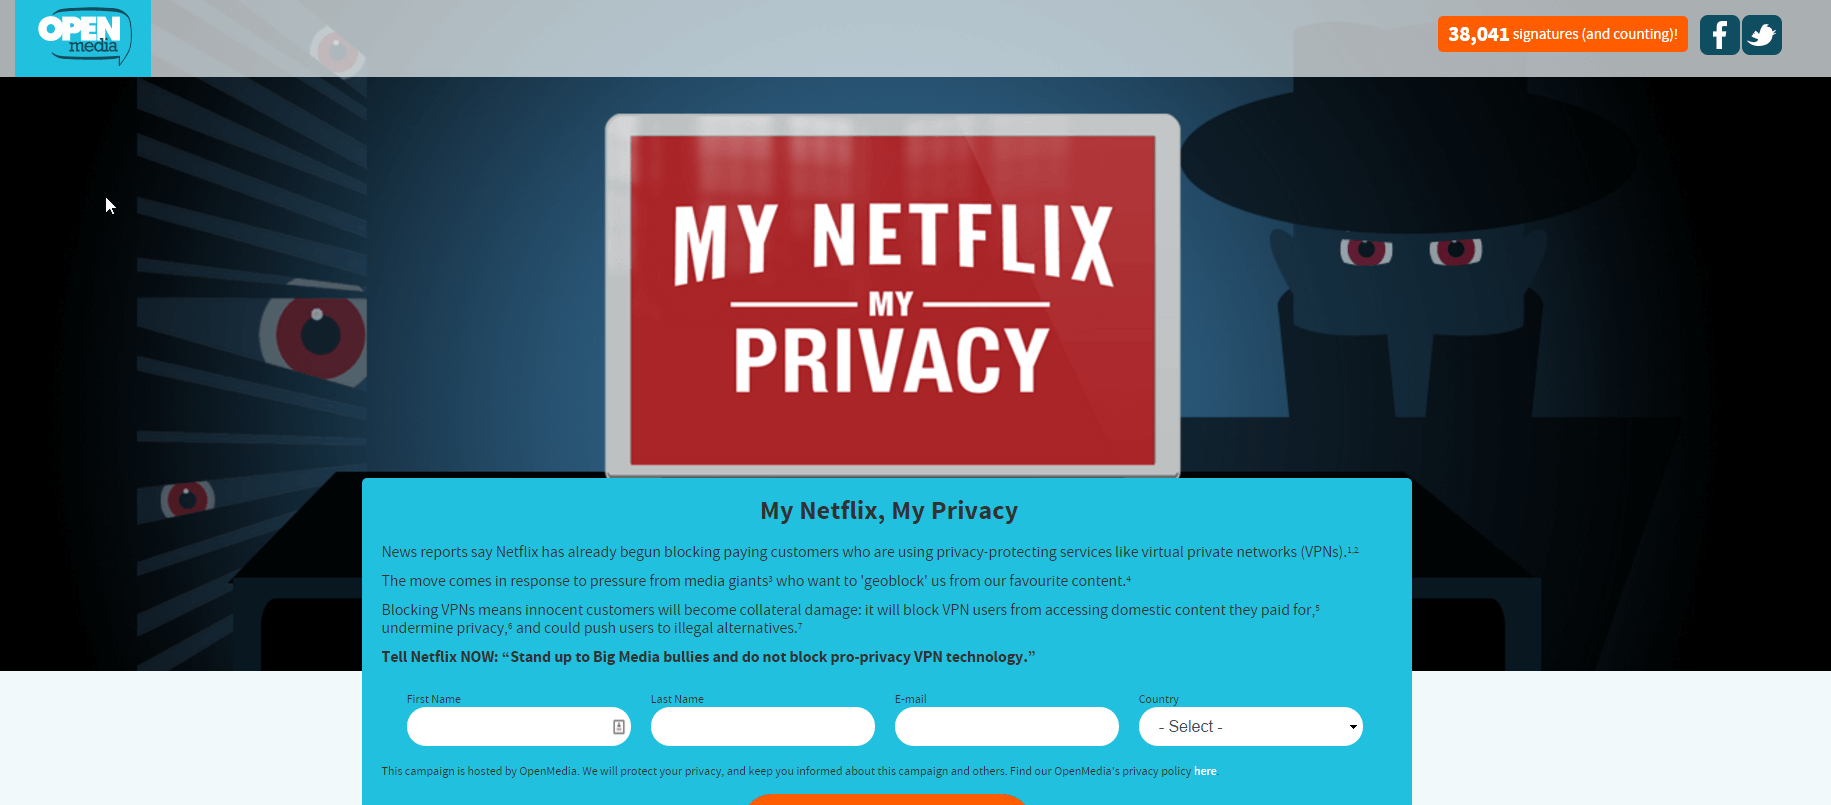 Netflix Unblock VPN Petition has 38,000 signatures